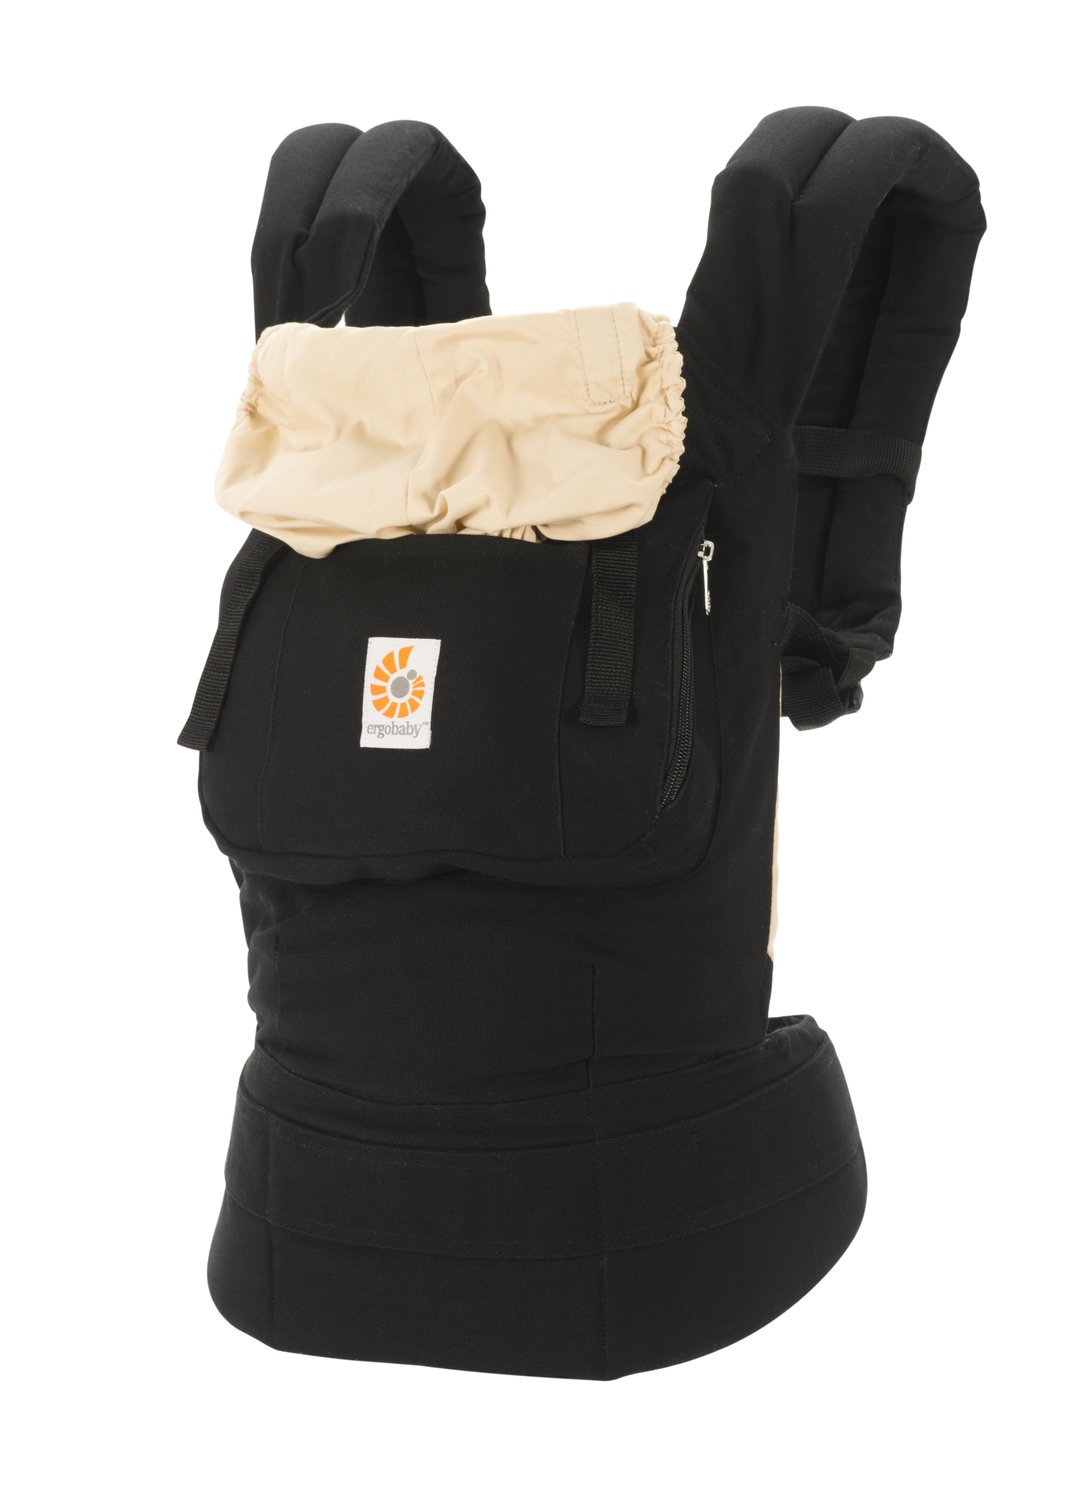 Ergo Baby Original Baby Carrier